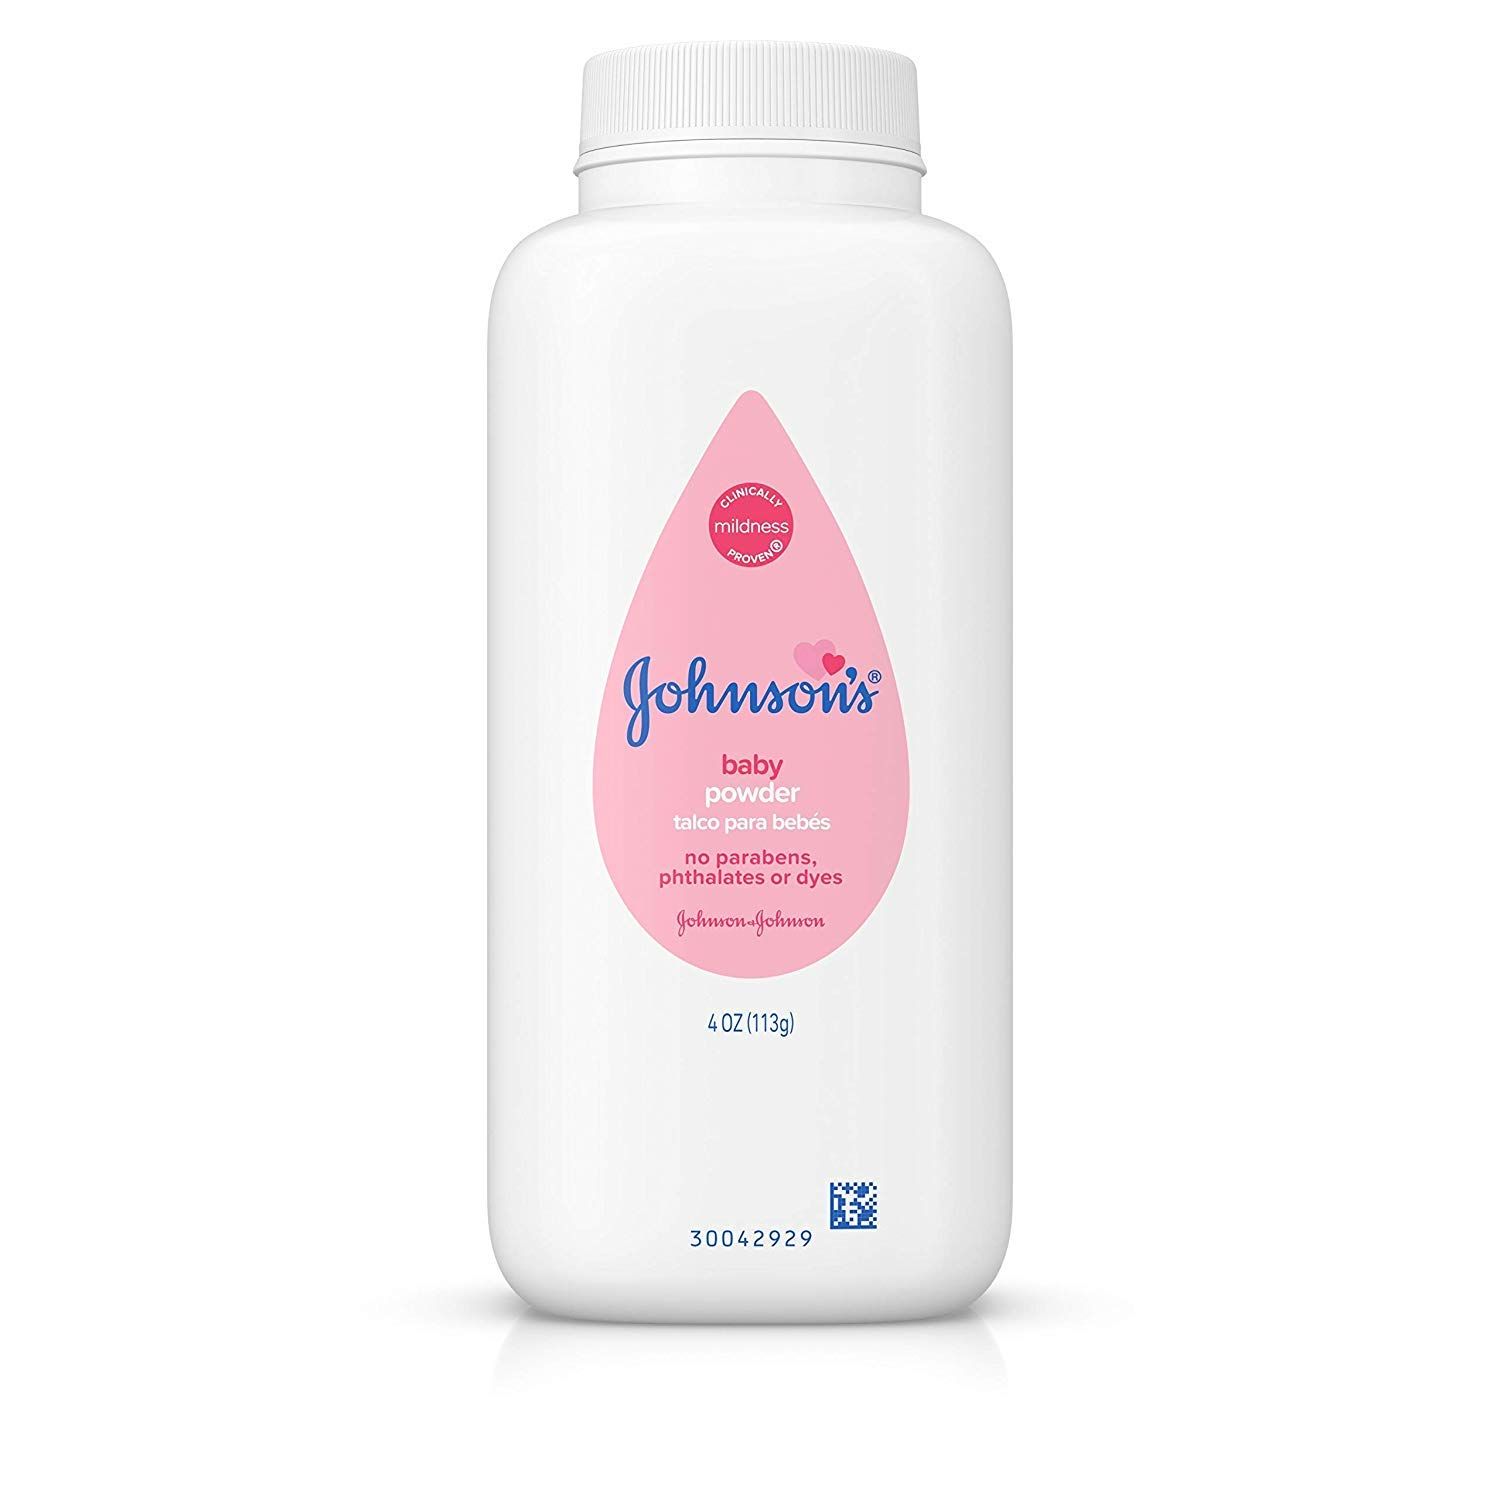 Johnsons Baby Powder - Silky Soft Feel. 4 Oz Each (Pack of 6) by Johnson